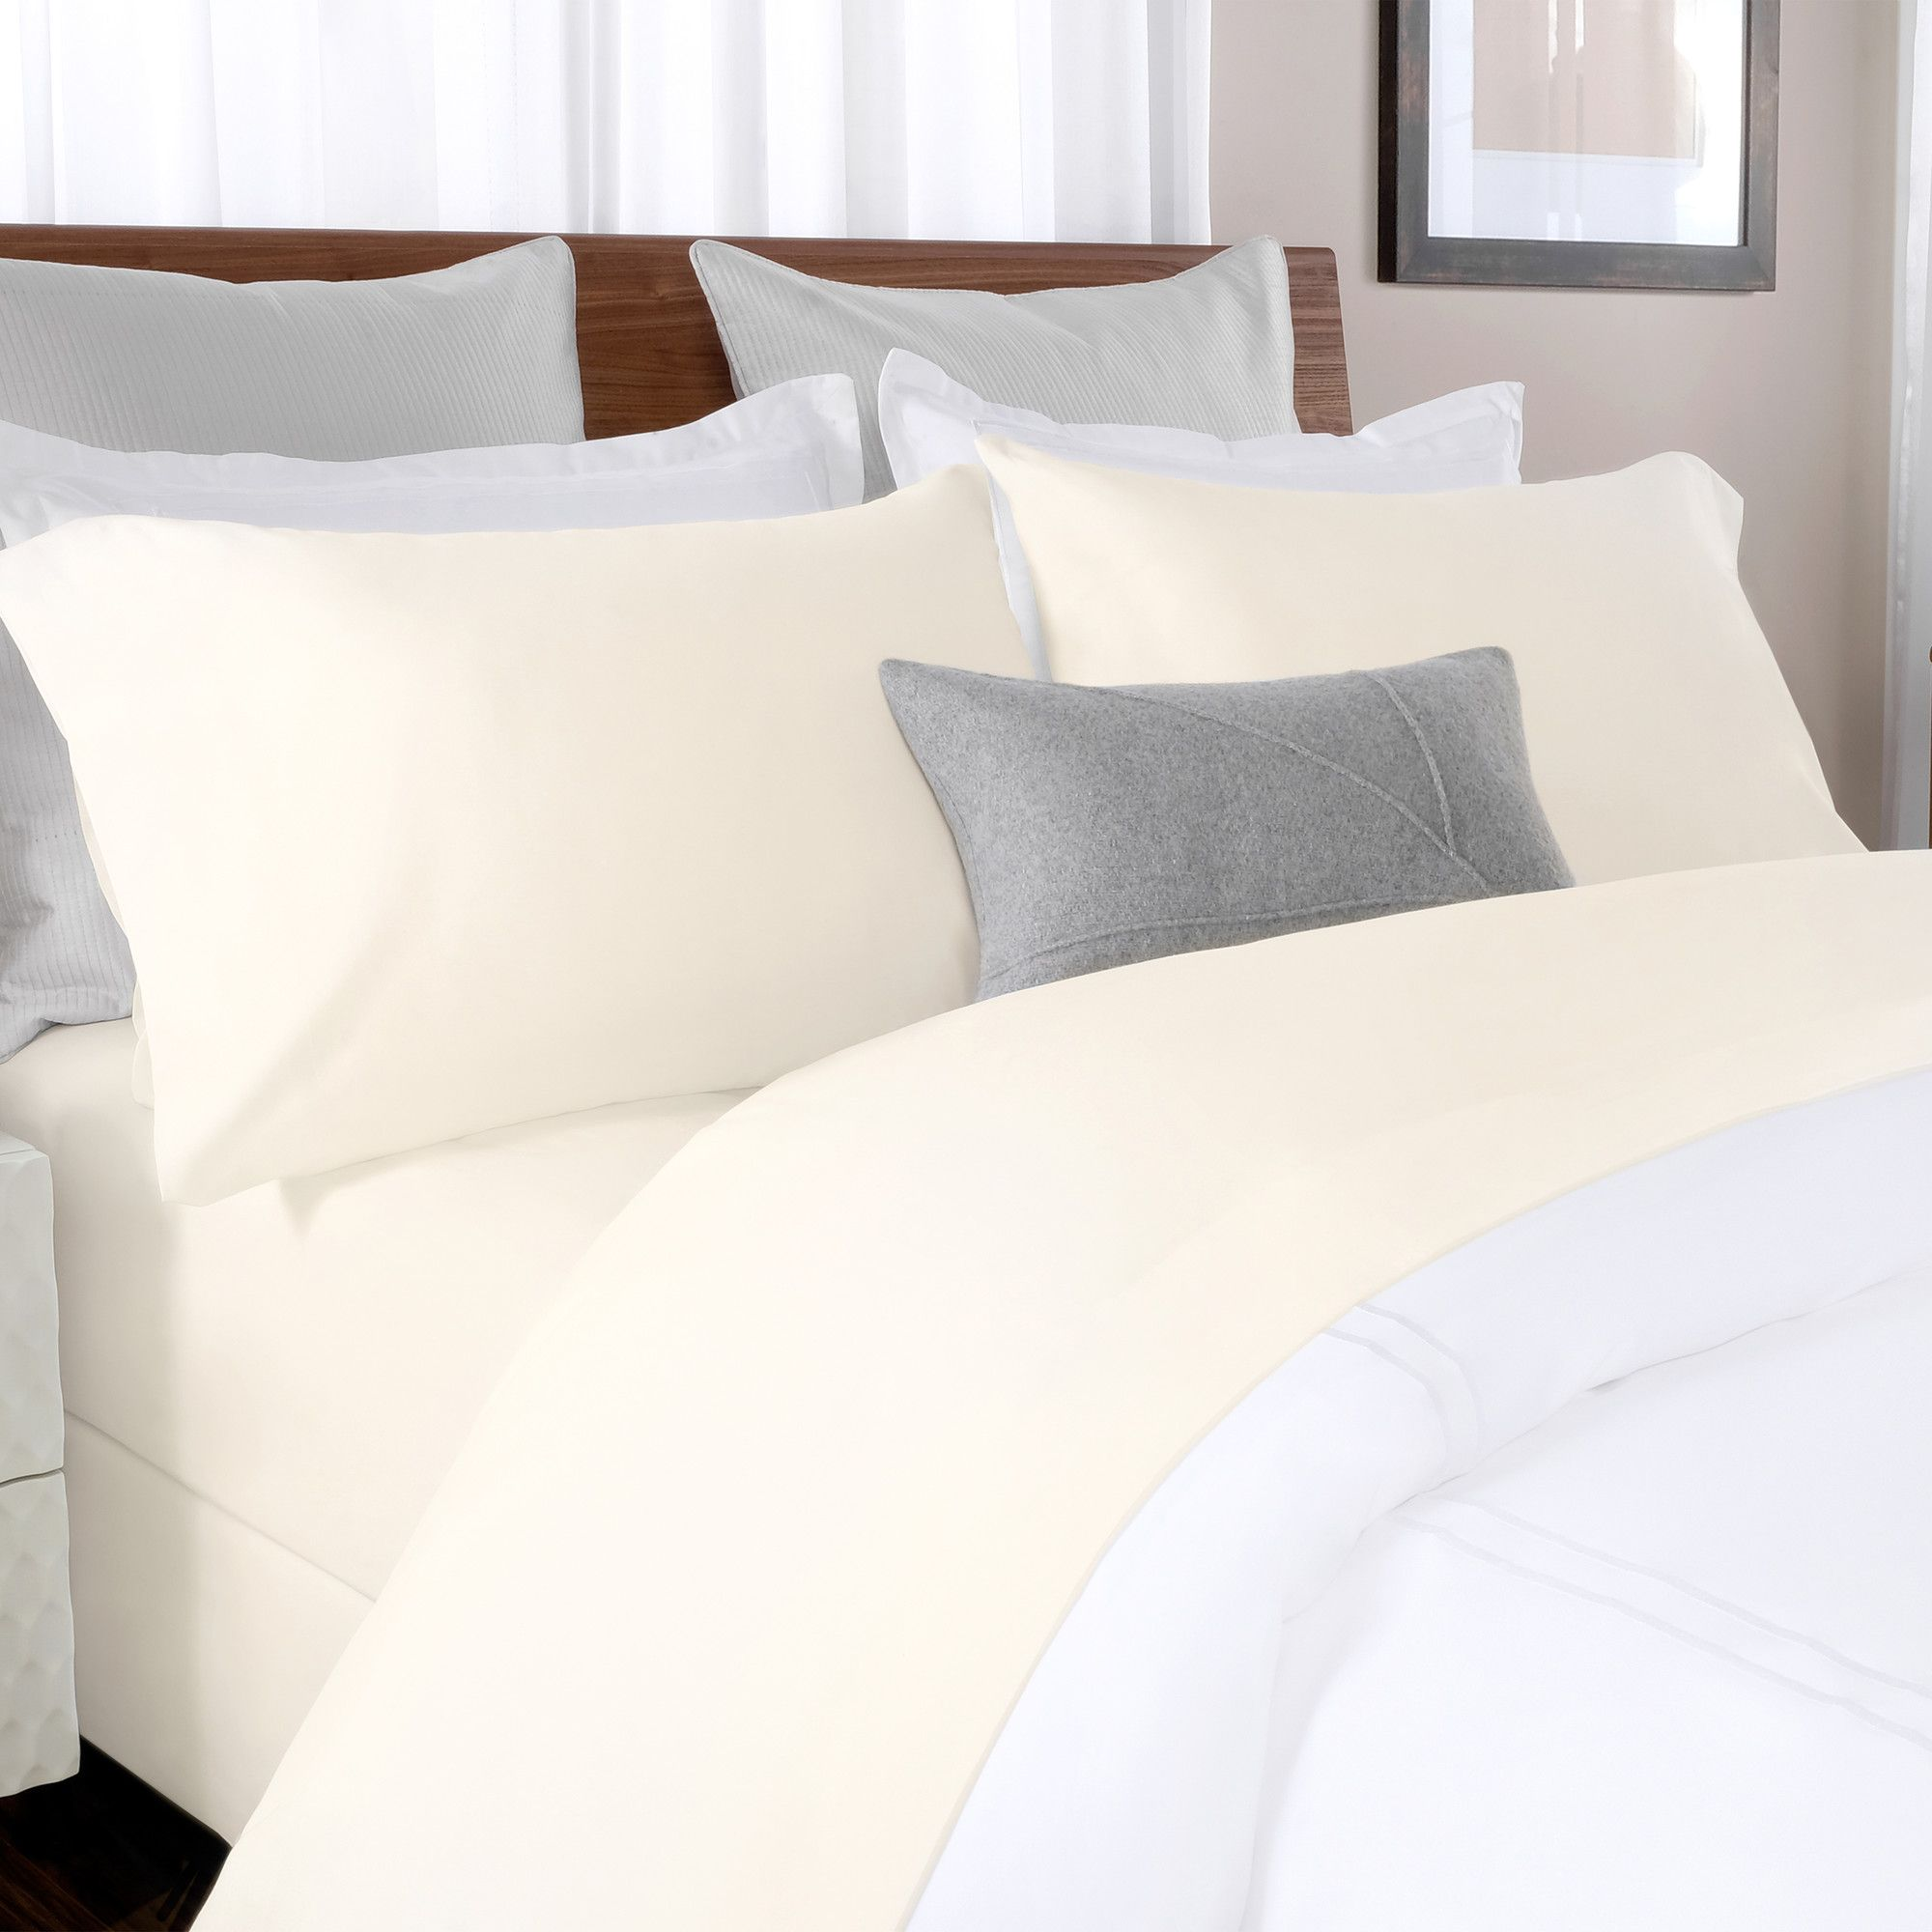 queen fitted sheet cotton percale